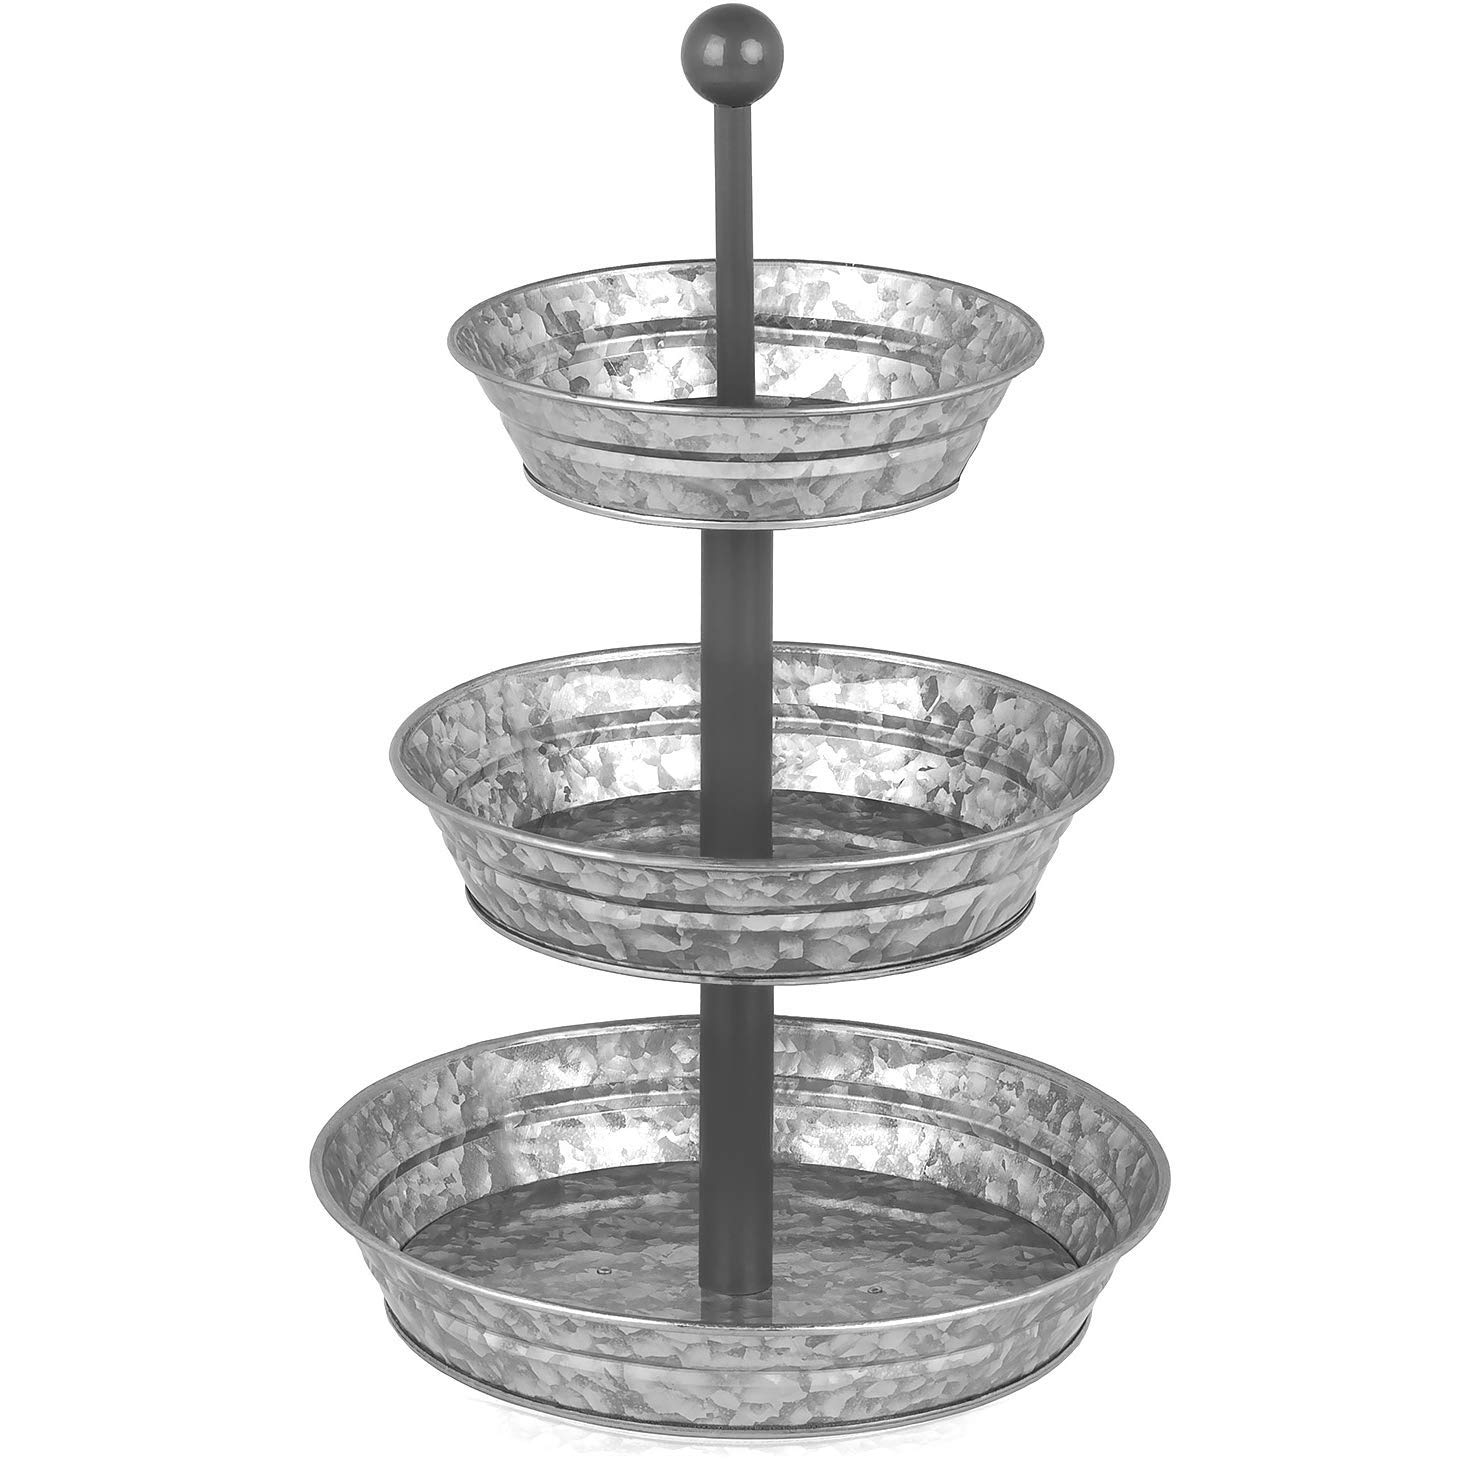 3 Tier Serving Tray - Galvanized, Rustic Metal Stand. Dessert, Cupcake, Fruit & Party Three Tiered Platter. Country Farmhouse Vintage Decor for the Kitchen, Home, Farm & Outdoor